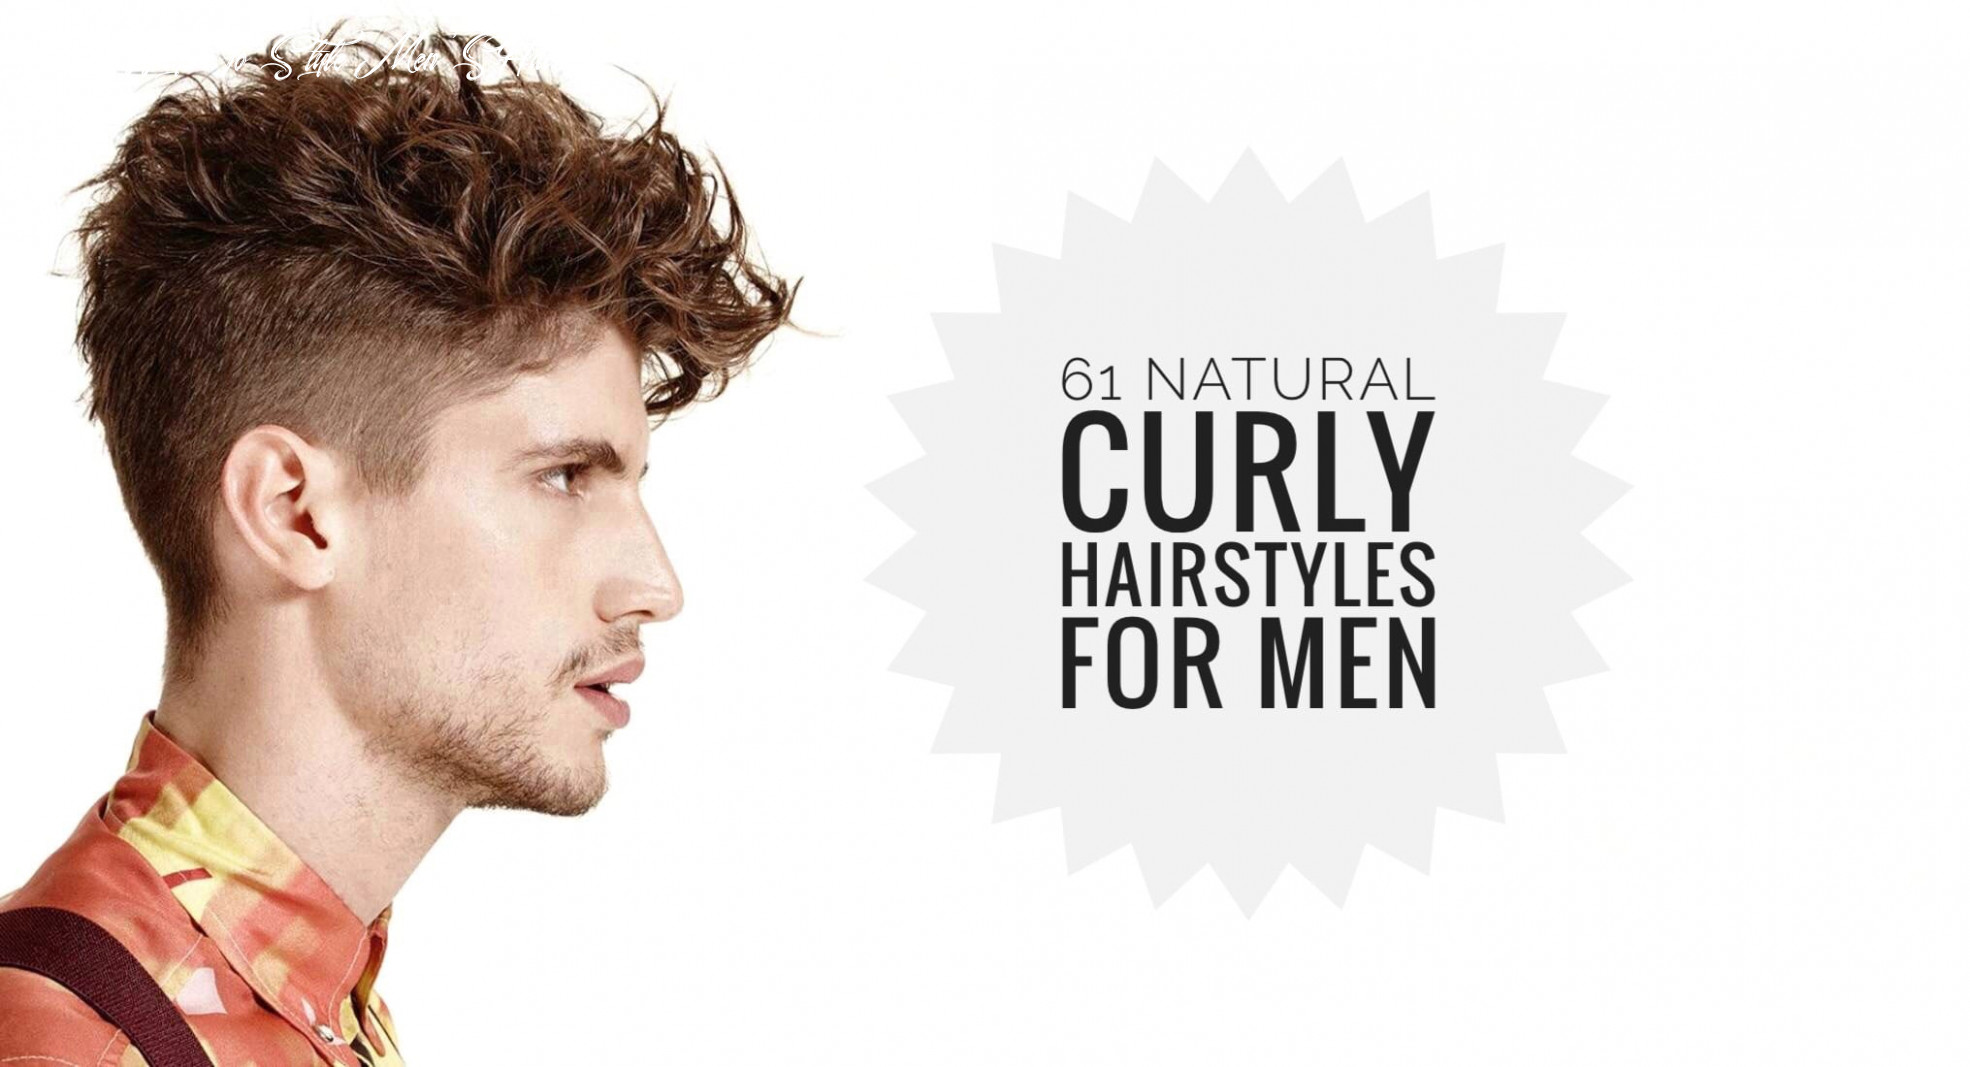 11 curly hairstyles for men to style those curls men hairstyles